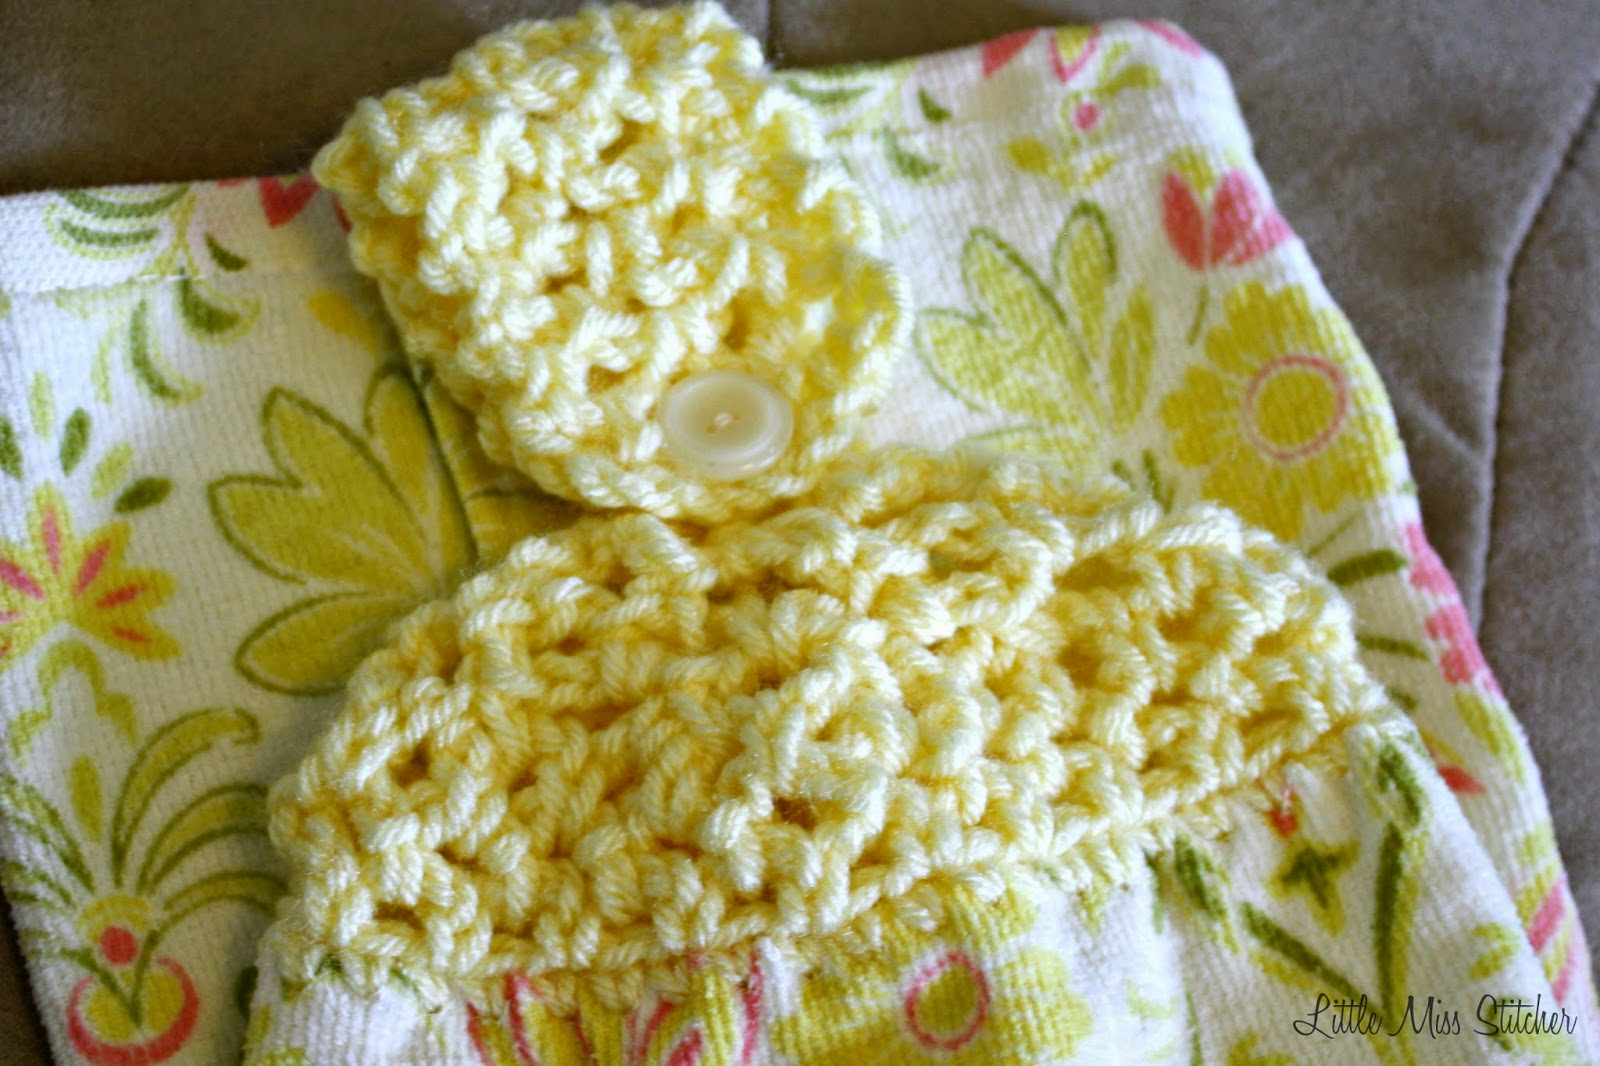 http://little-miss-stitcher.blogspot.com/2014/05/textured-towel-topper.html